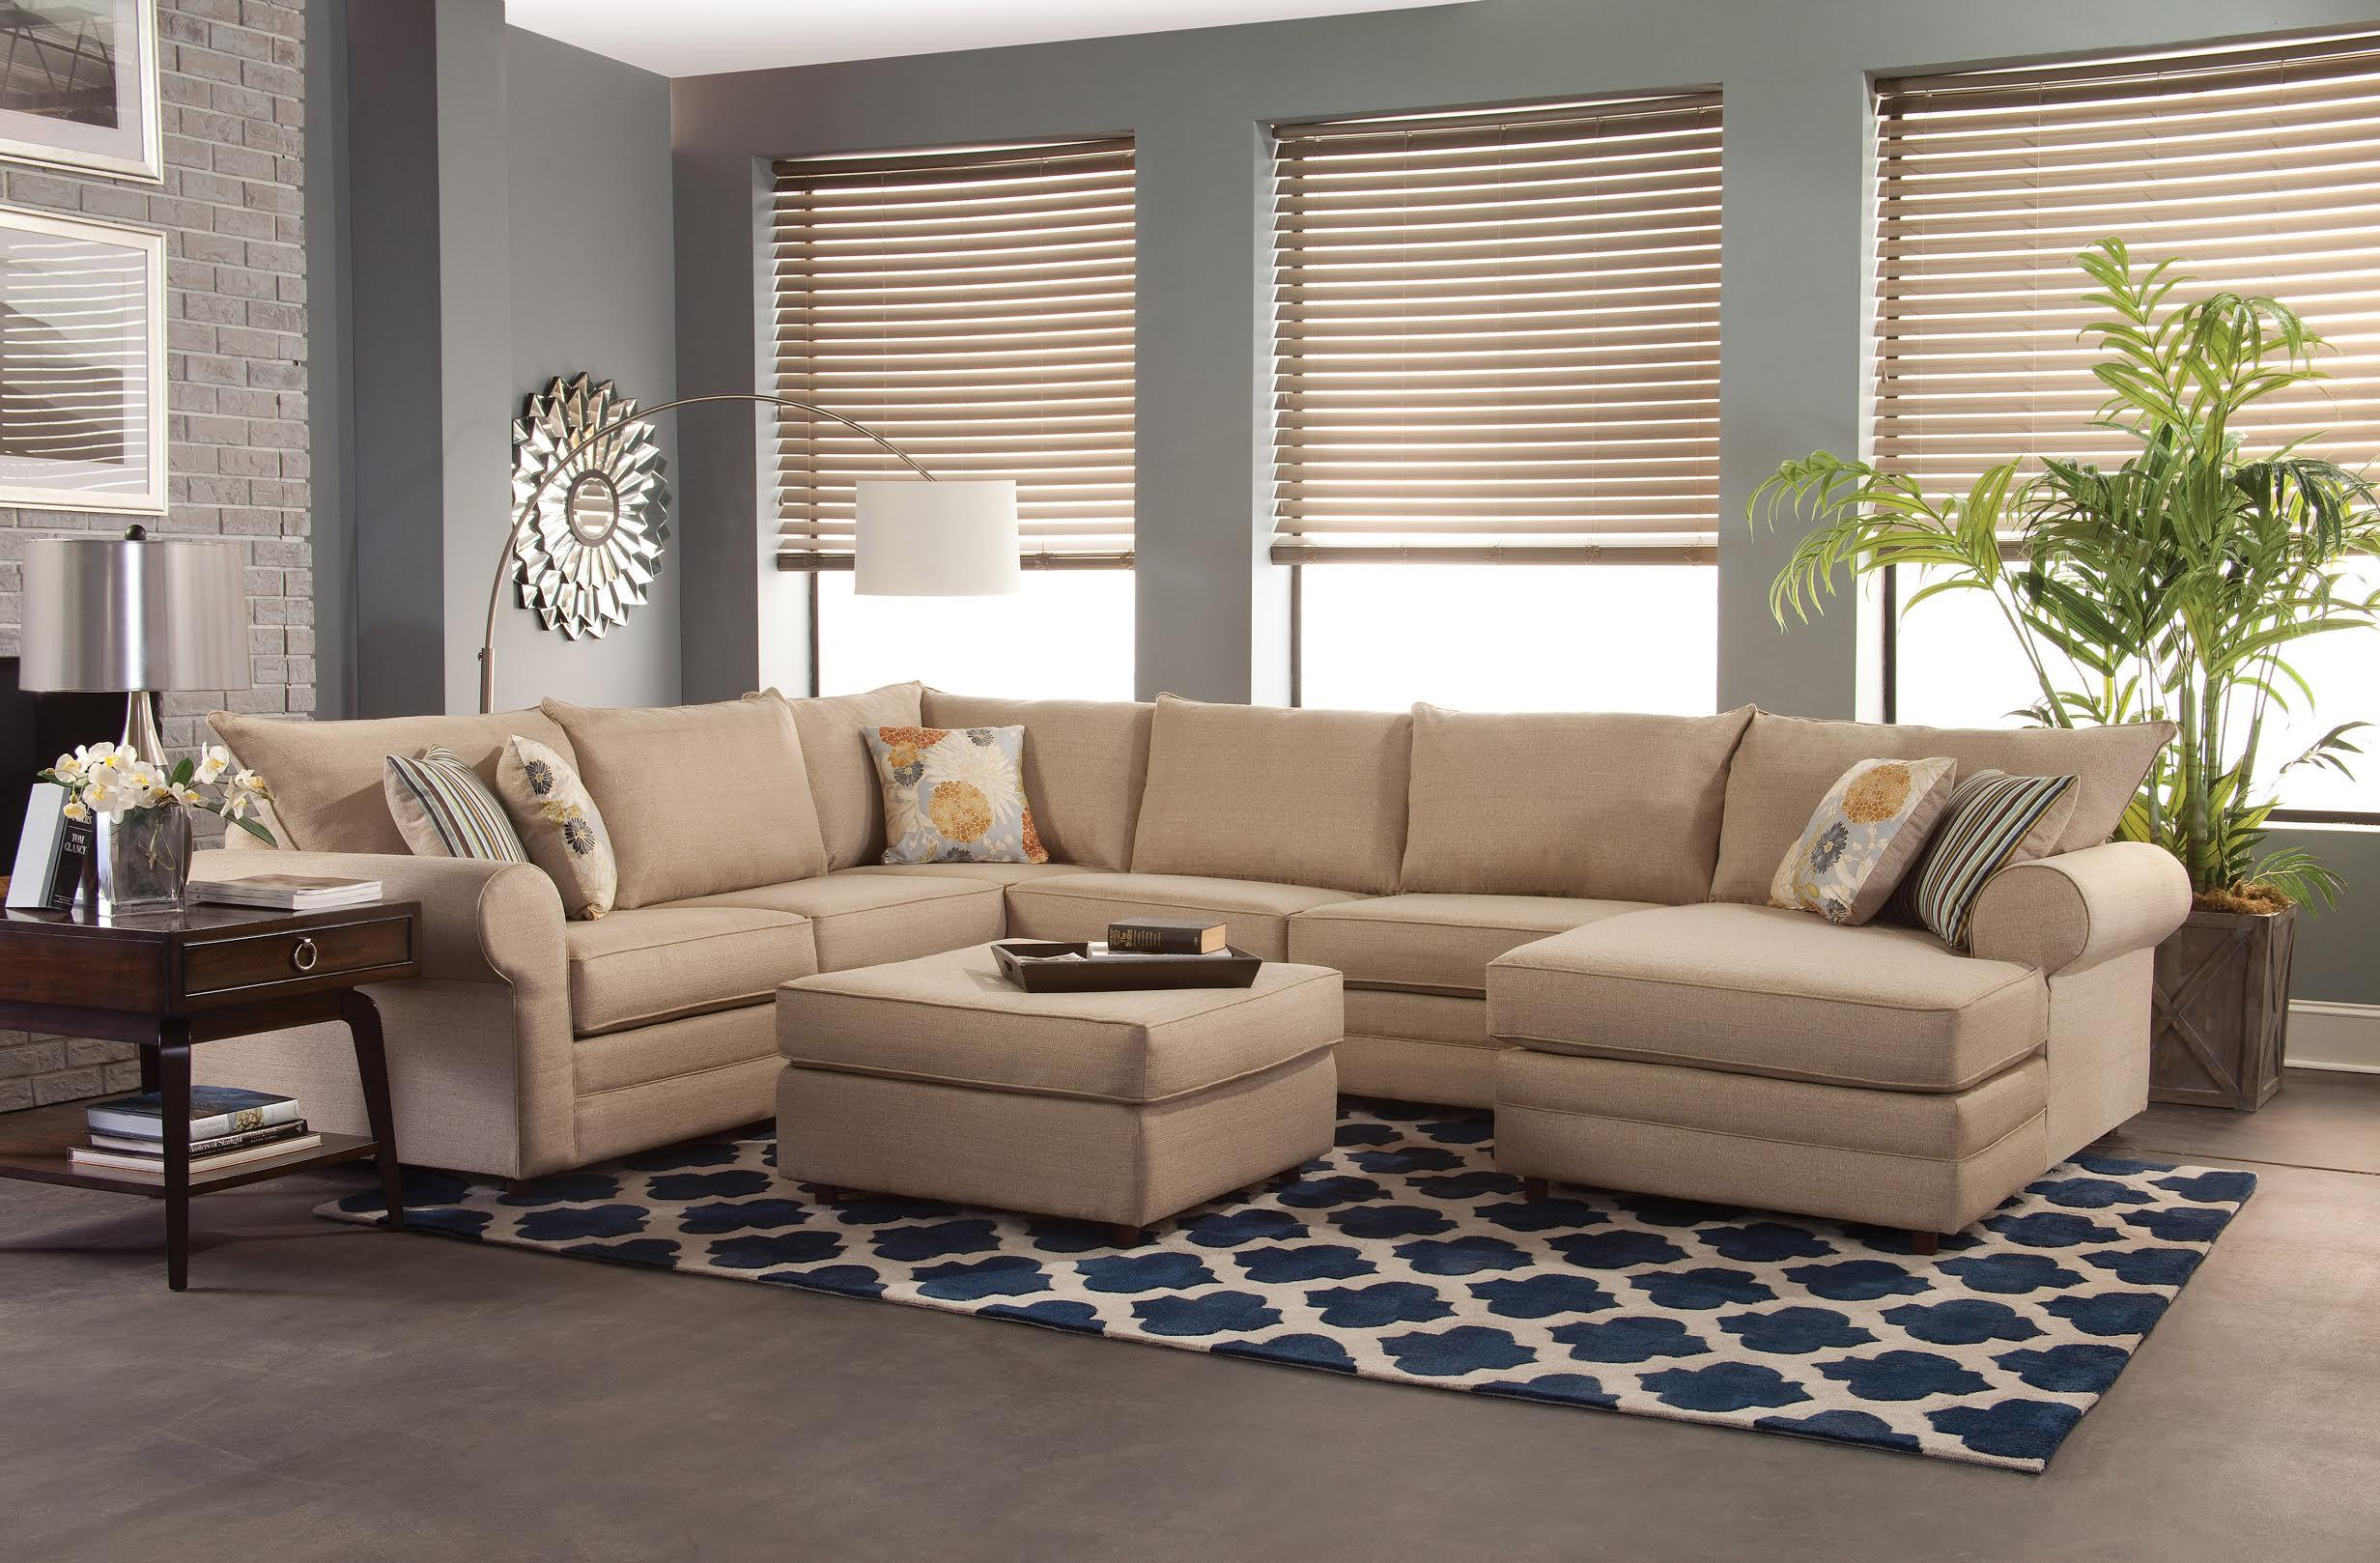 sectional pin sectionals your orders tan get rewards over shipping home overstock with in store com on goods free club couch at o